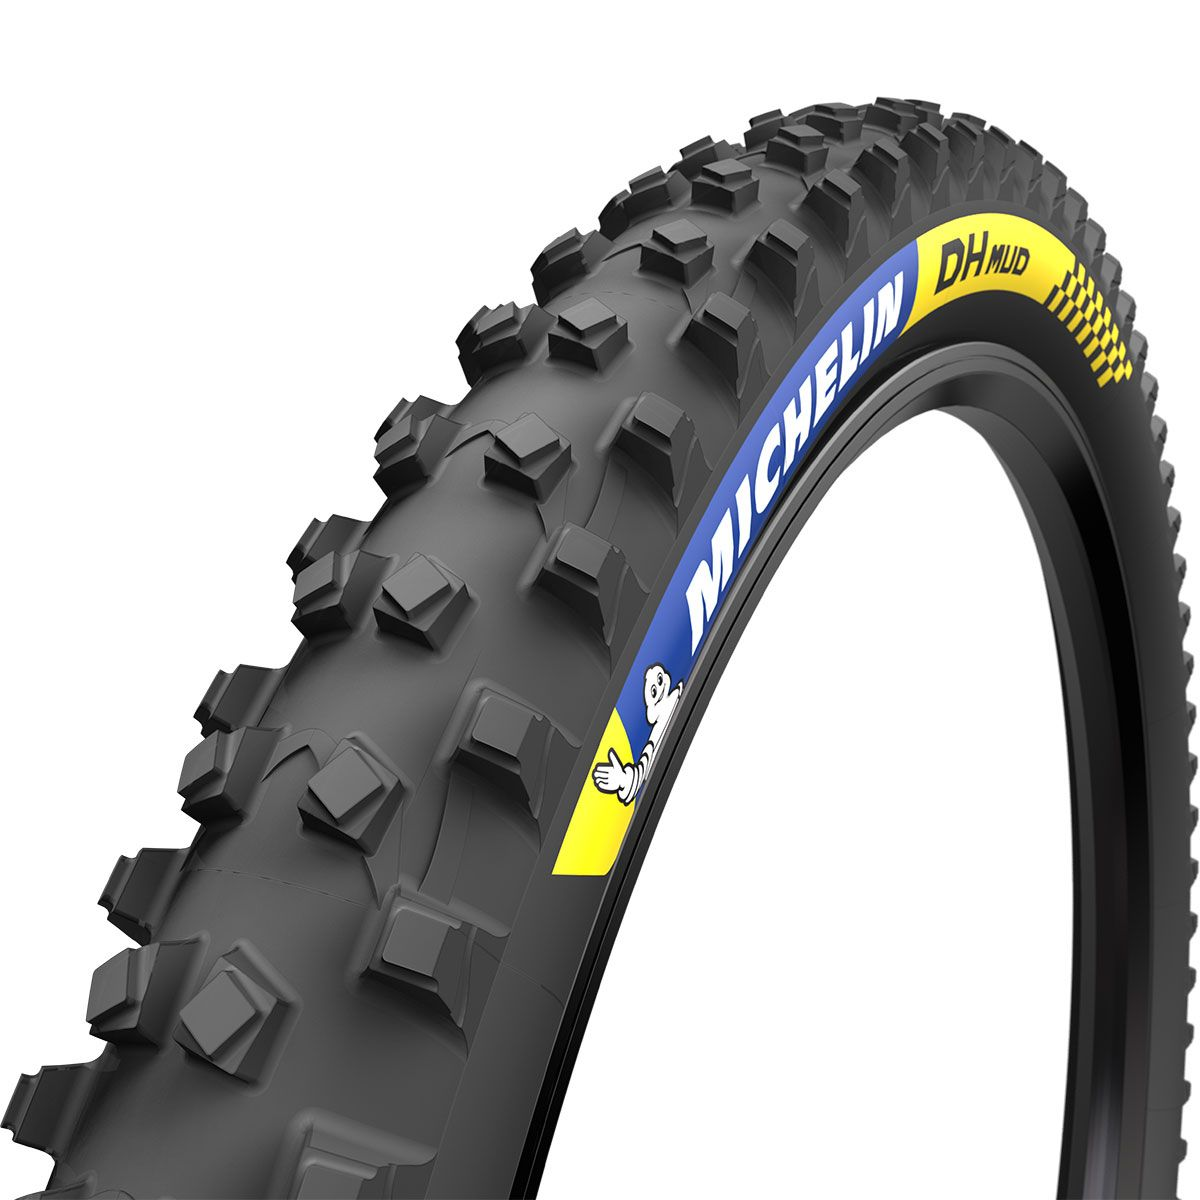 MICHELIN DH MUD TLR WIRE 29X2.40 RACING LINE 399994 Množ. Uni